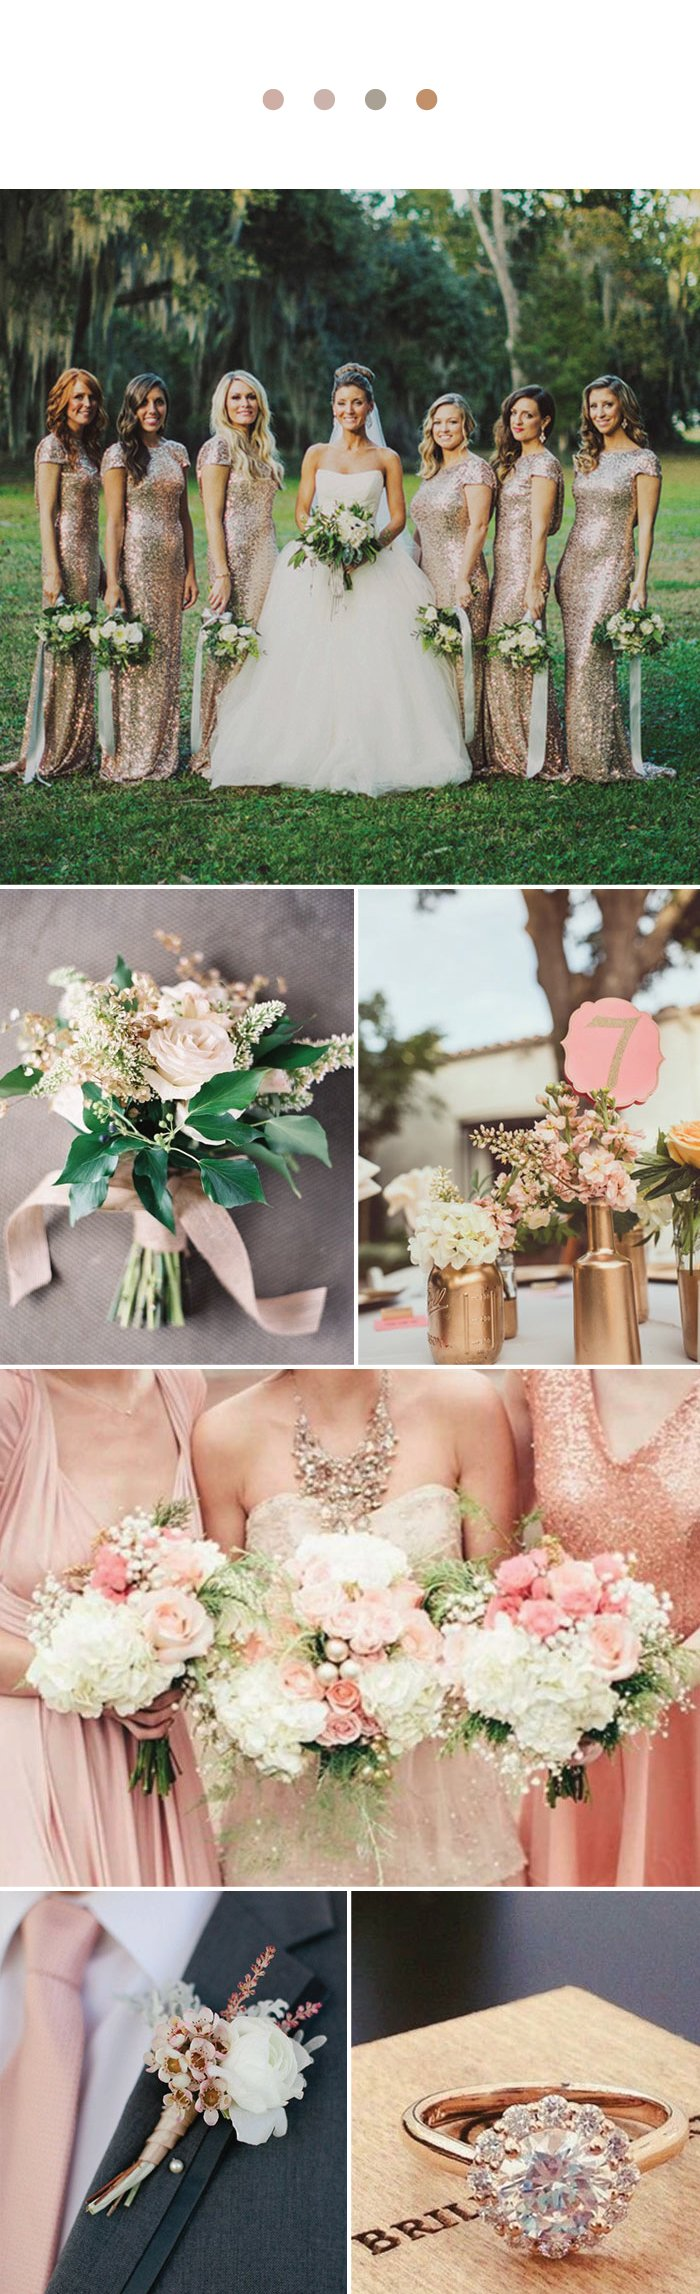 Wedding Color Inspiration For Rose Gold Groomsmen